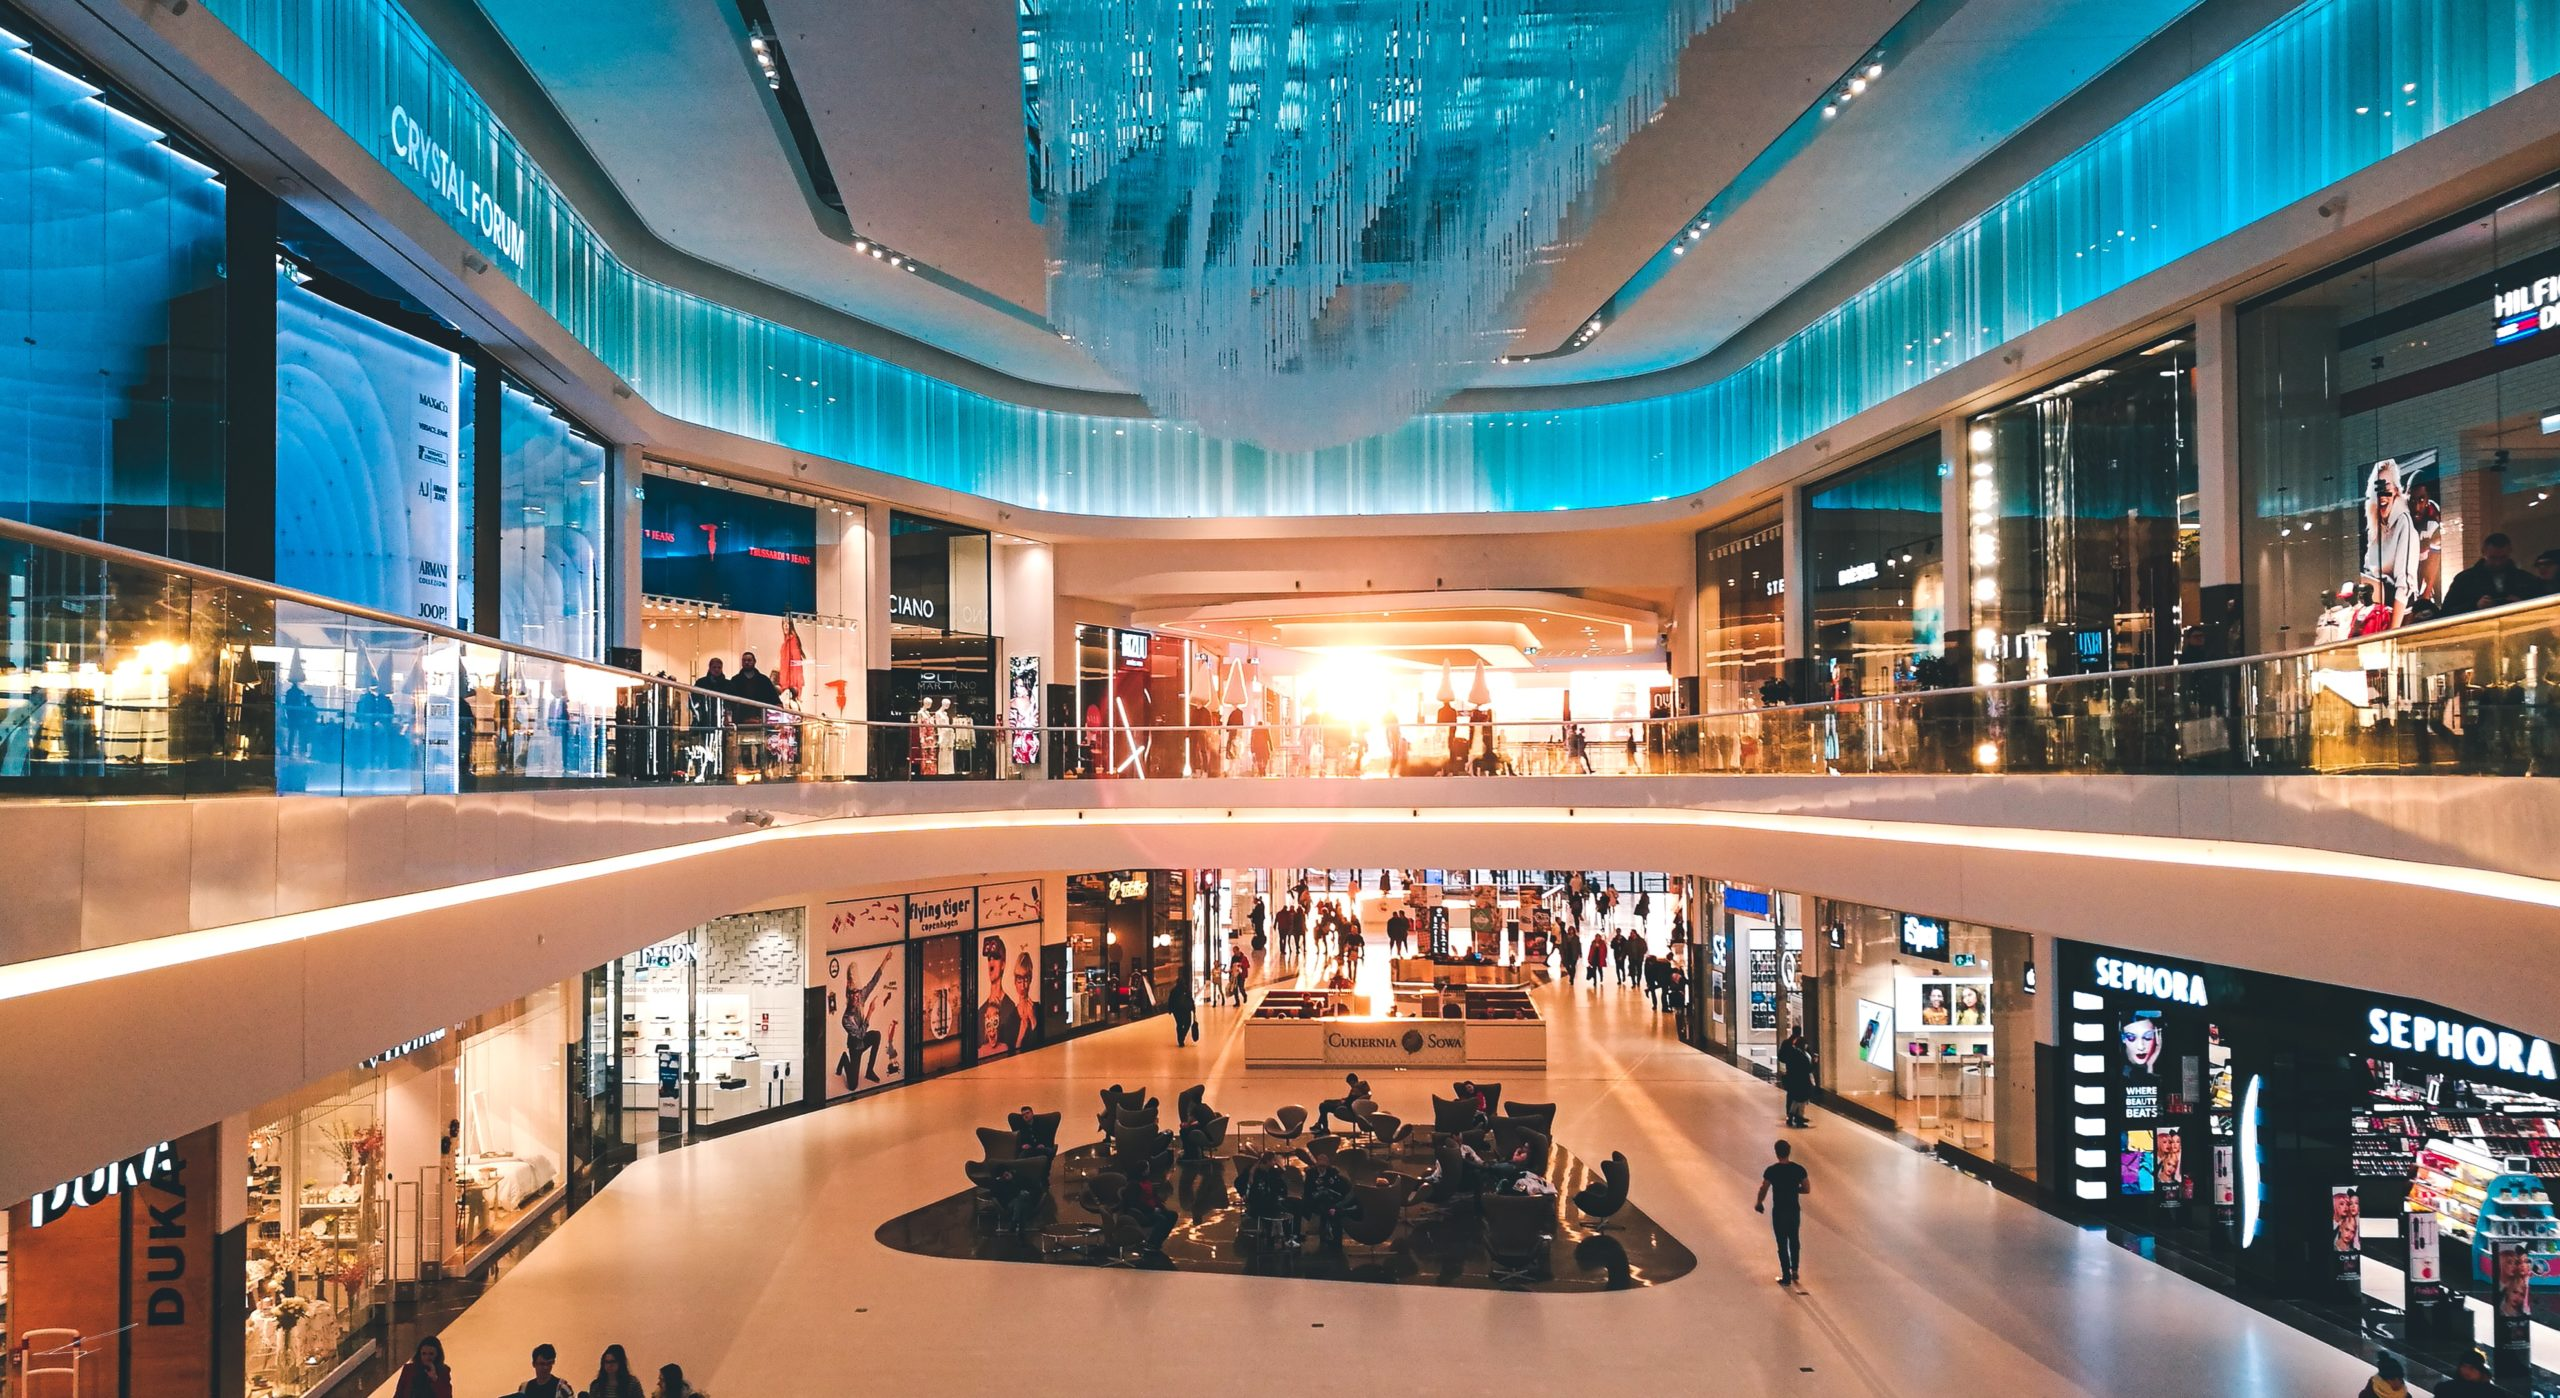 Consider Hong Kong as one of the Best Shopping Destinations